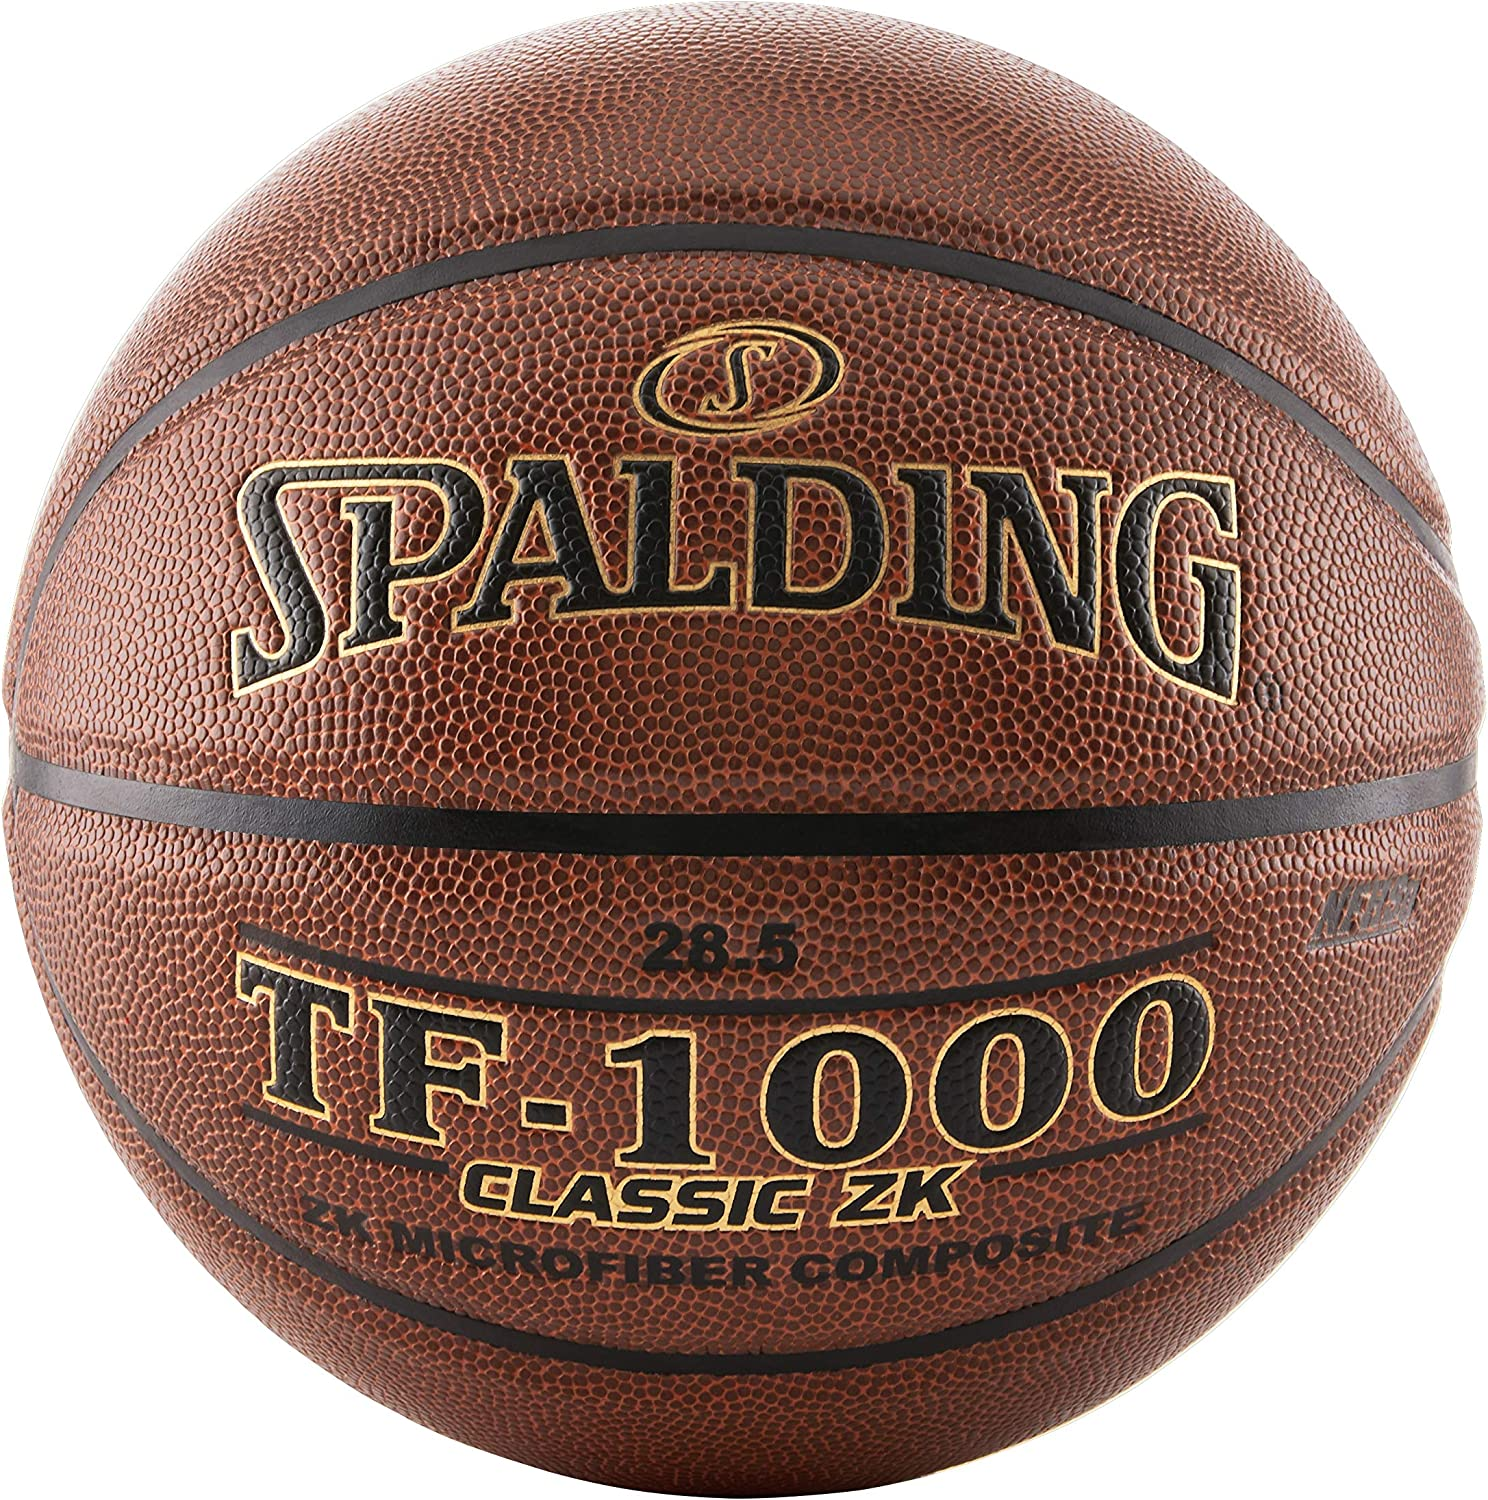 Spalding ft 1000 Classic Indoor Basketball